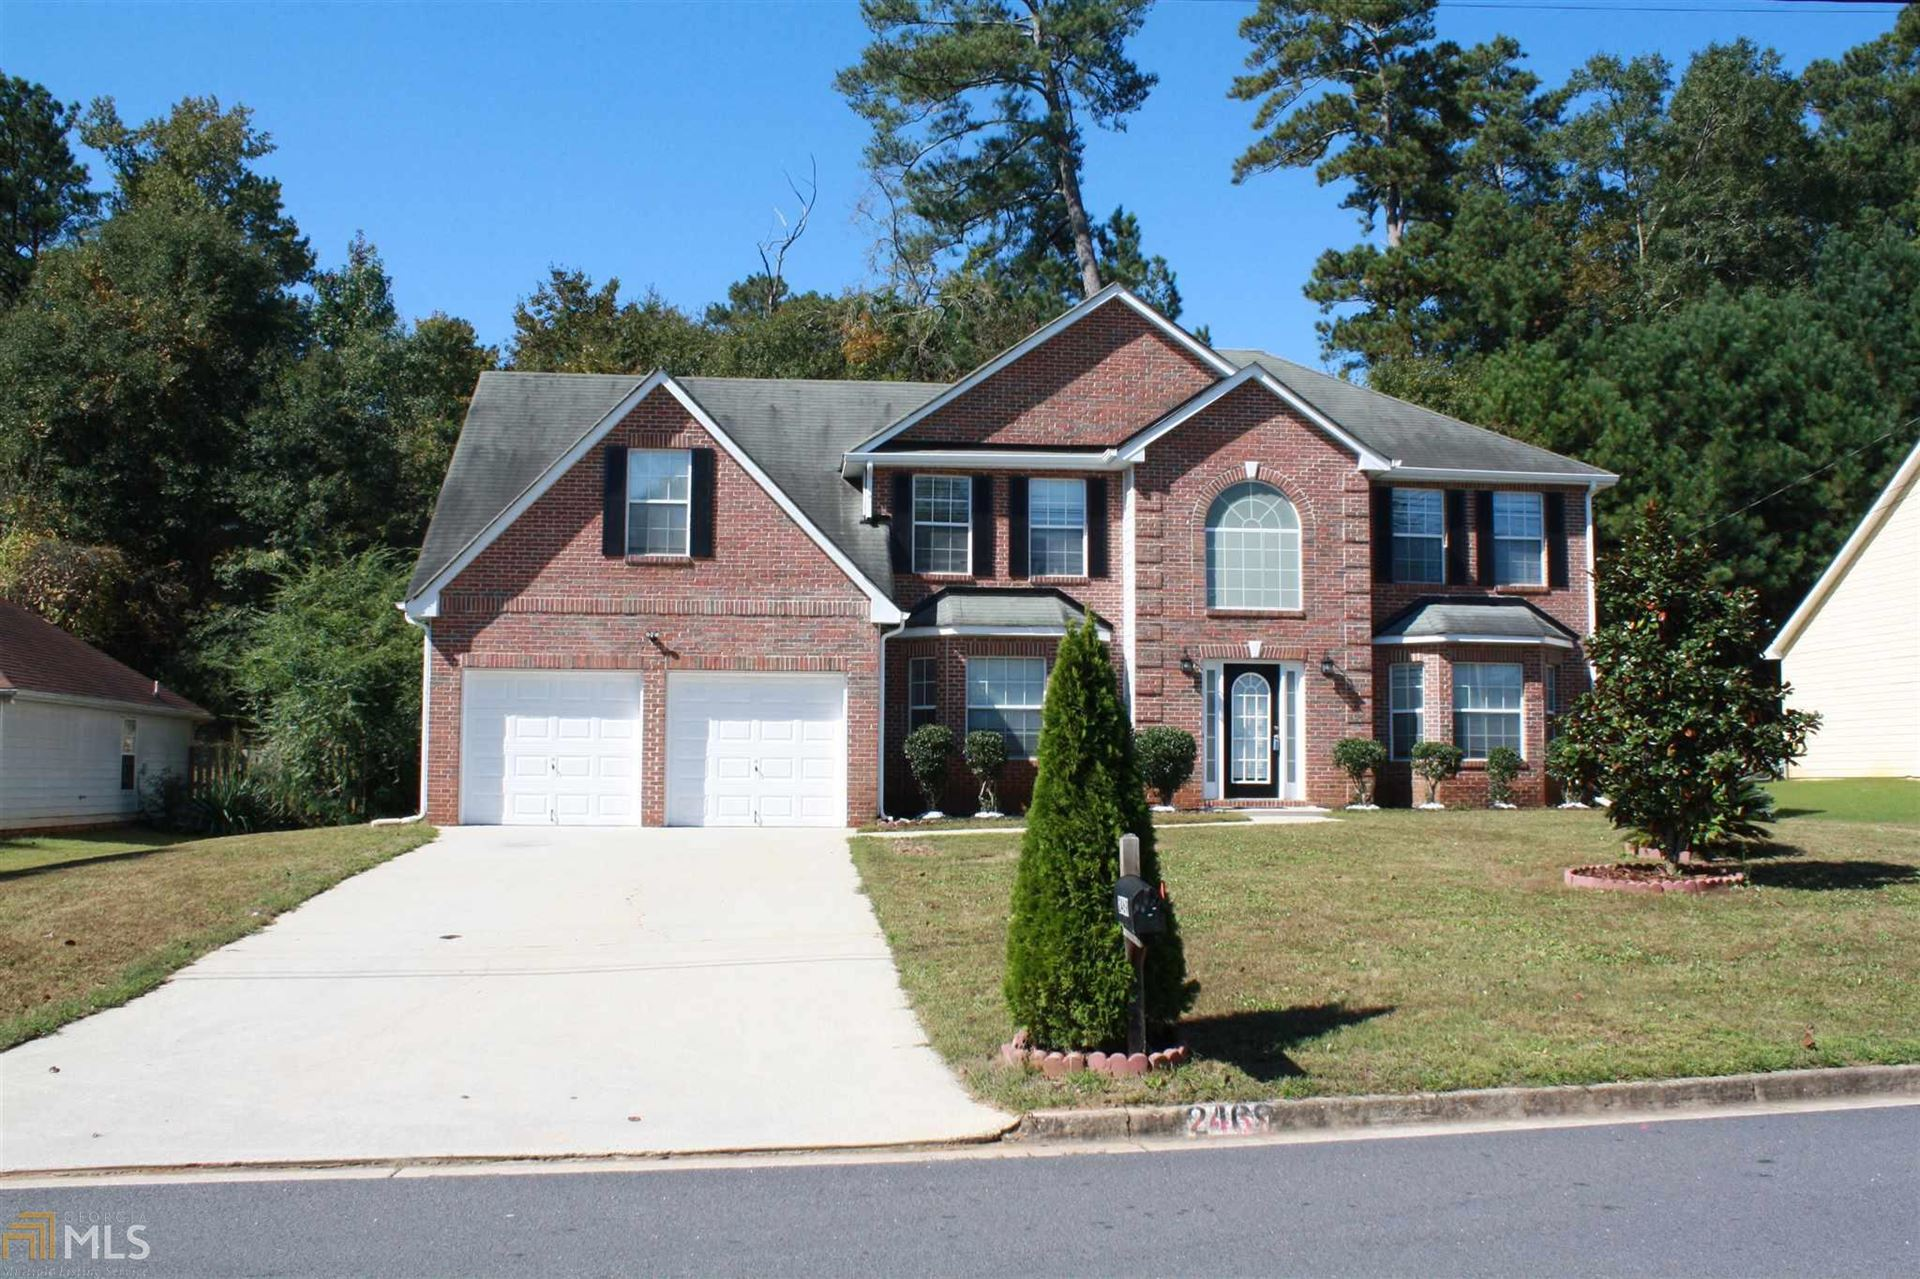 2469 Marsh Rabbit Bnd, Decatur, GA 30035 - #: 8873845